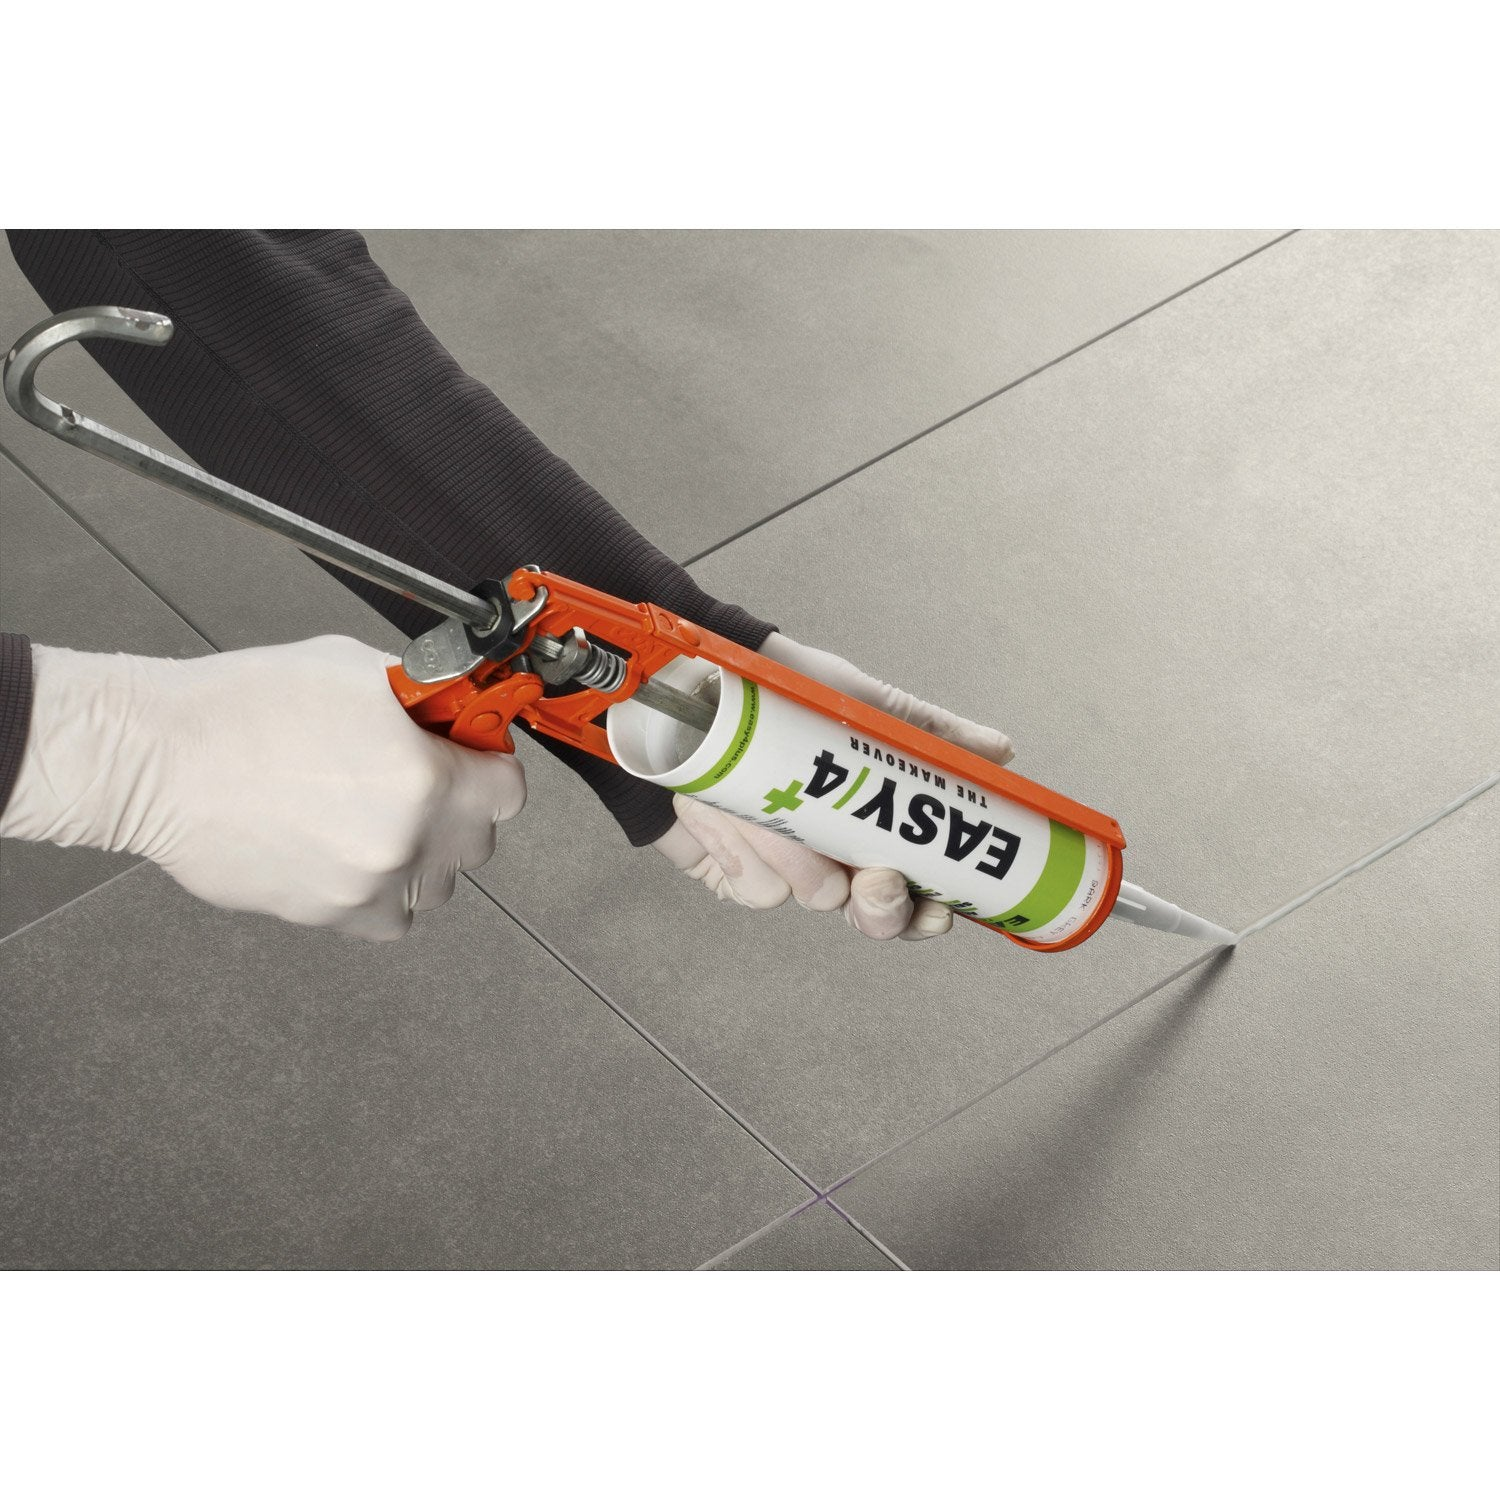 Joint acrylique pour carrelage pose sans colle easy4 gris clair 310 ml leroy merlin - Colle carrelage exterieur leroy merlin ...